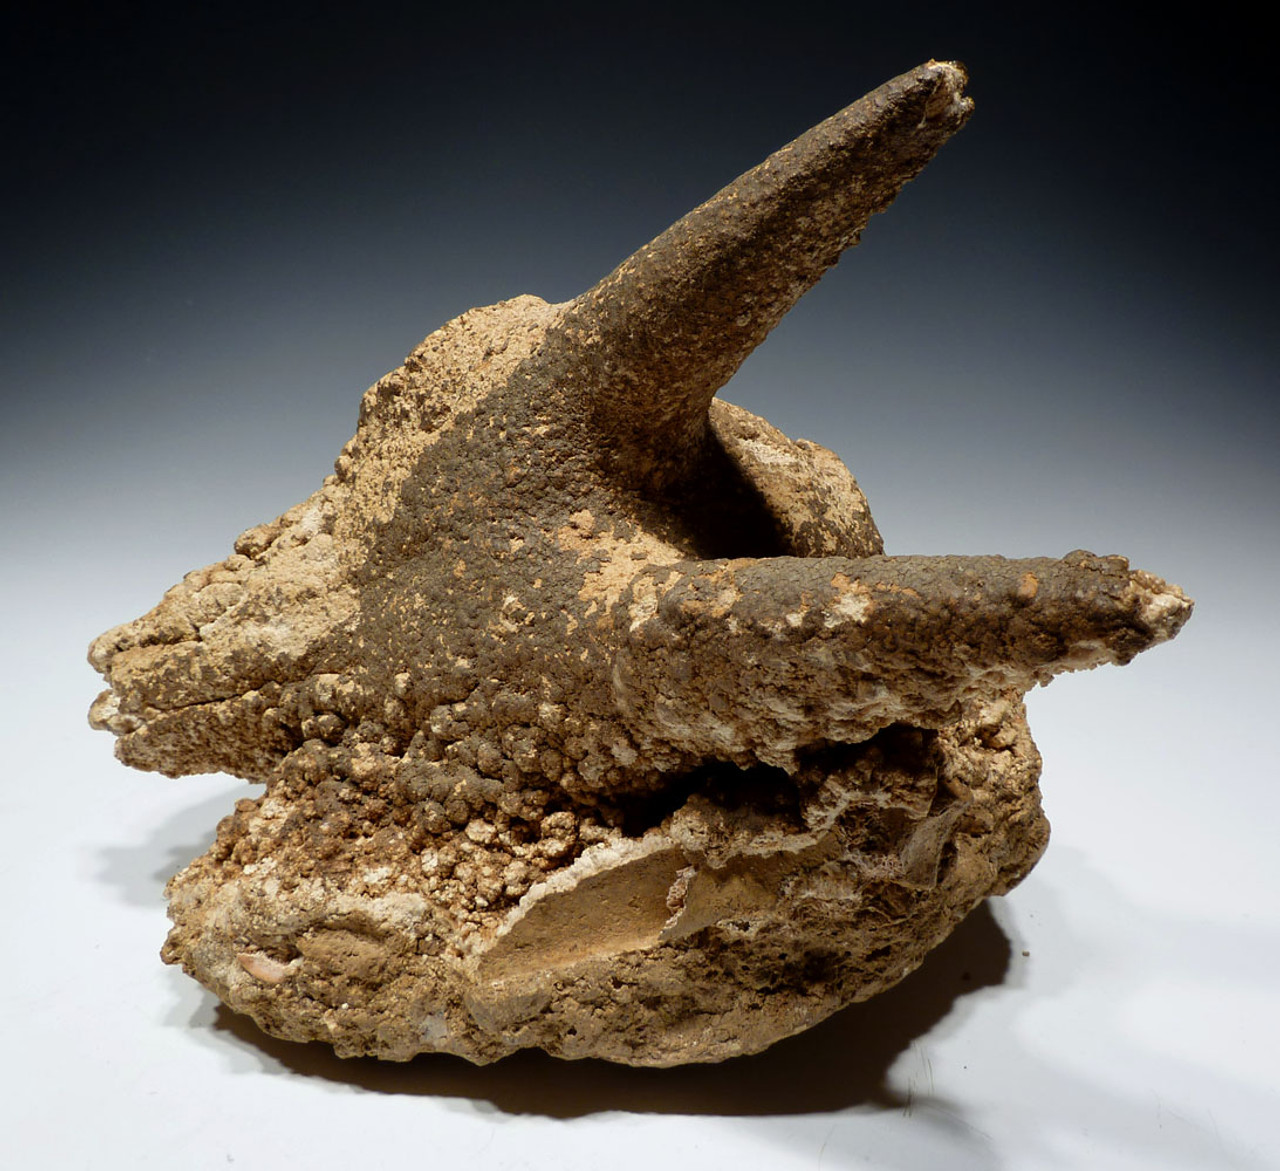 """ULTRA-RARE FOSSIL IBEX FOSSIL SKULL FOUND IN A CAVE COVERED IN CAVE PEARLS """"THE SLEEPING IBEX"""" *F46"""